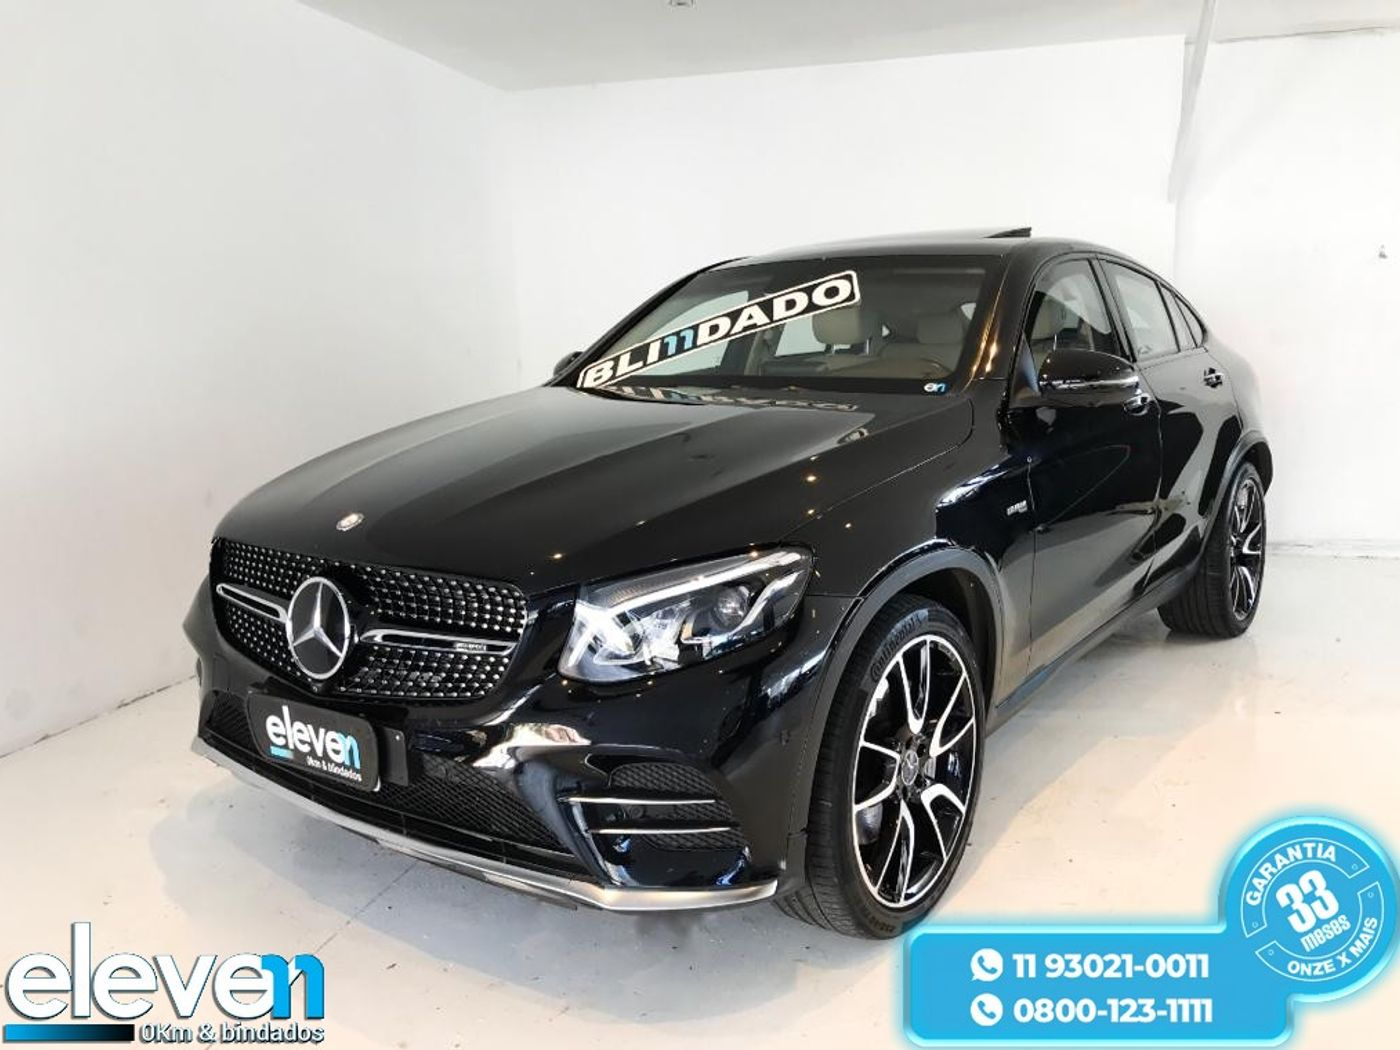 Mercedes GLC-43 AMG 4MATIC 3.0 V6 Bi-Turbo Aut.